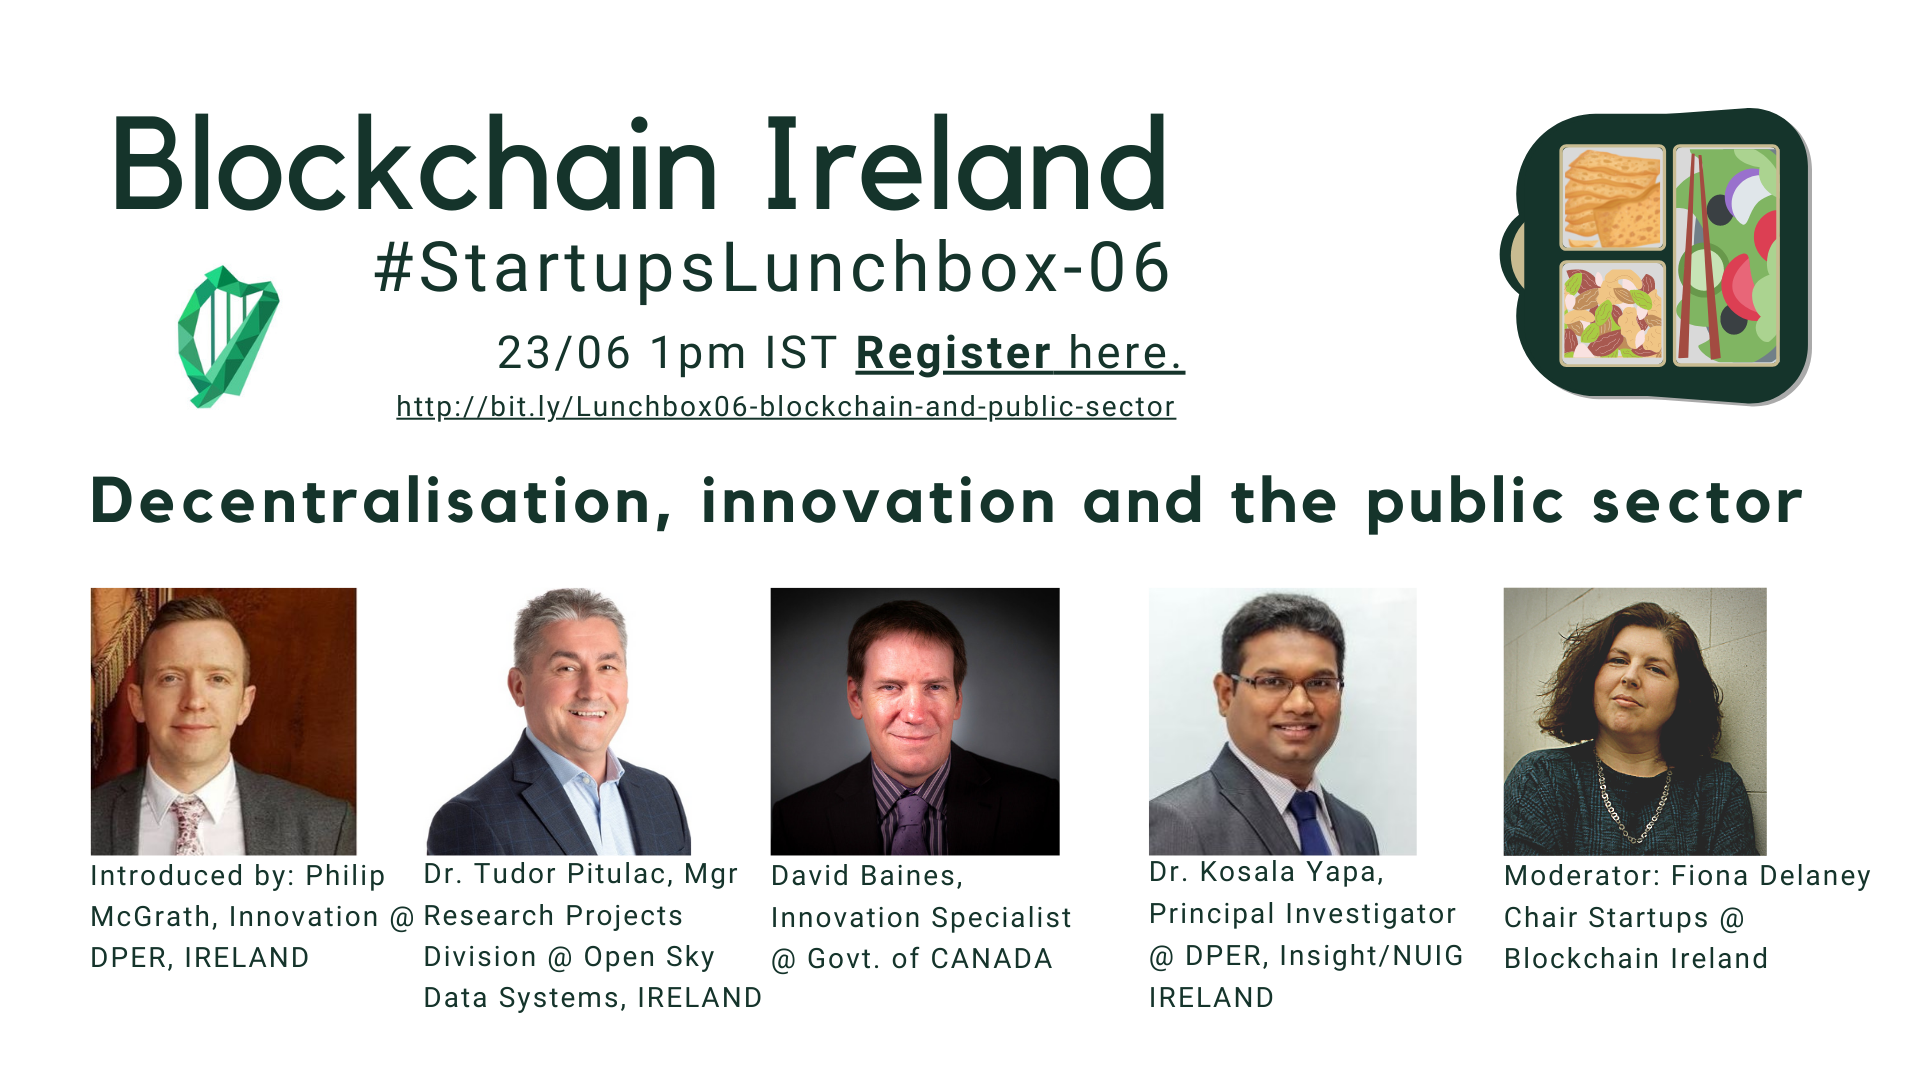 Blockchain Ireland and the Public Sector